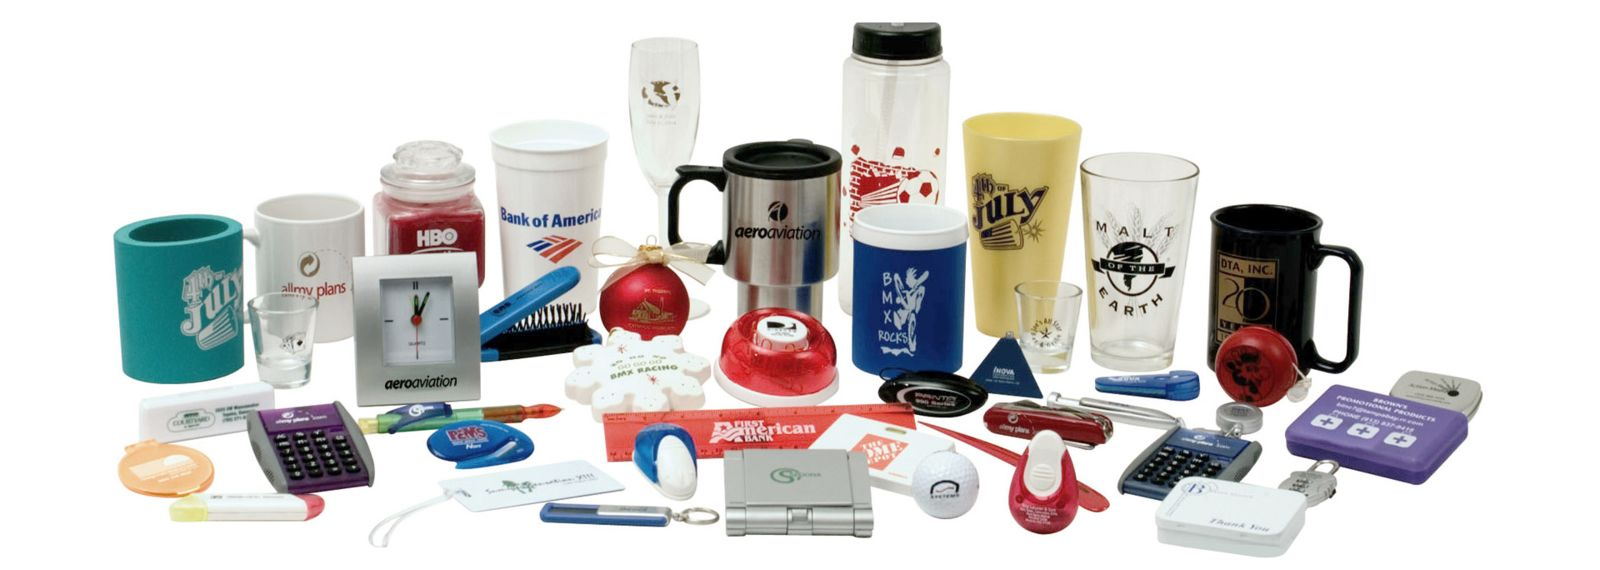 artflo promotional products